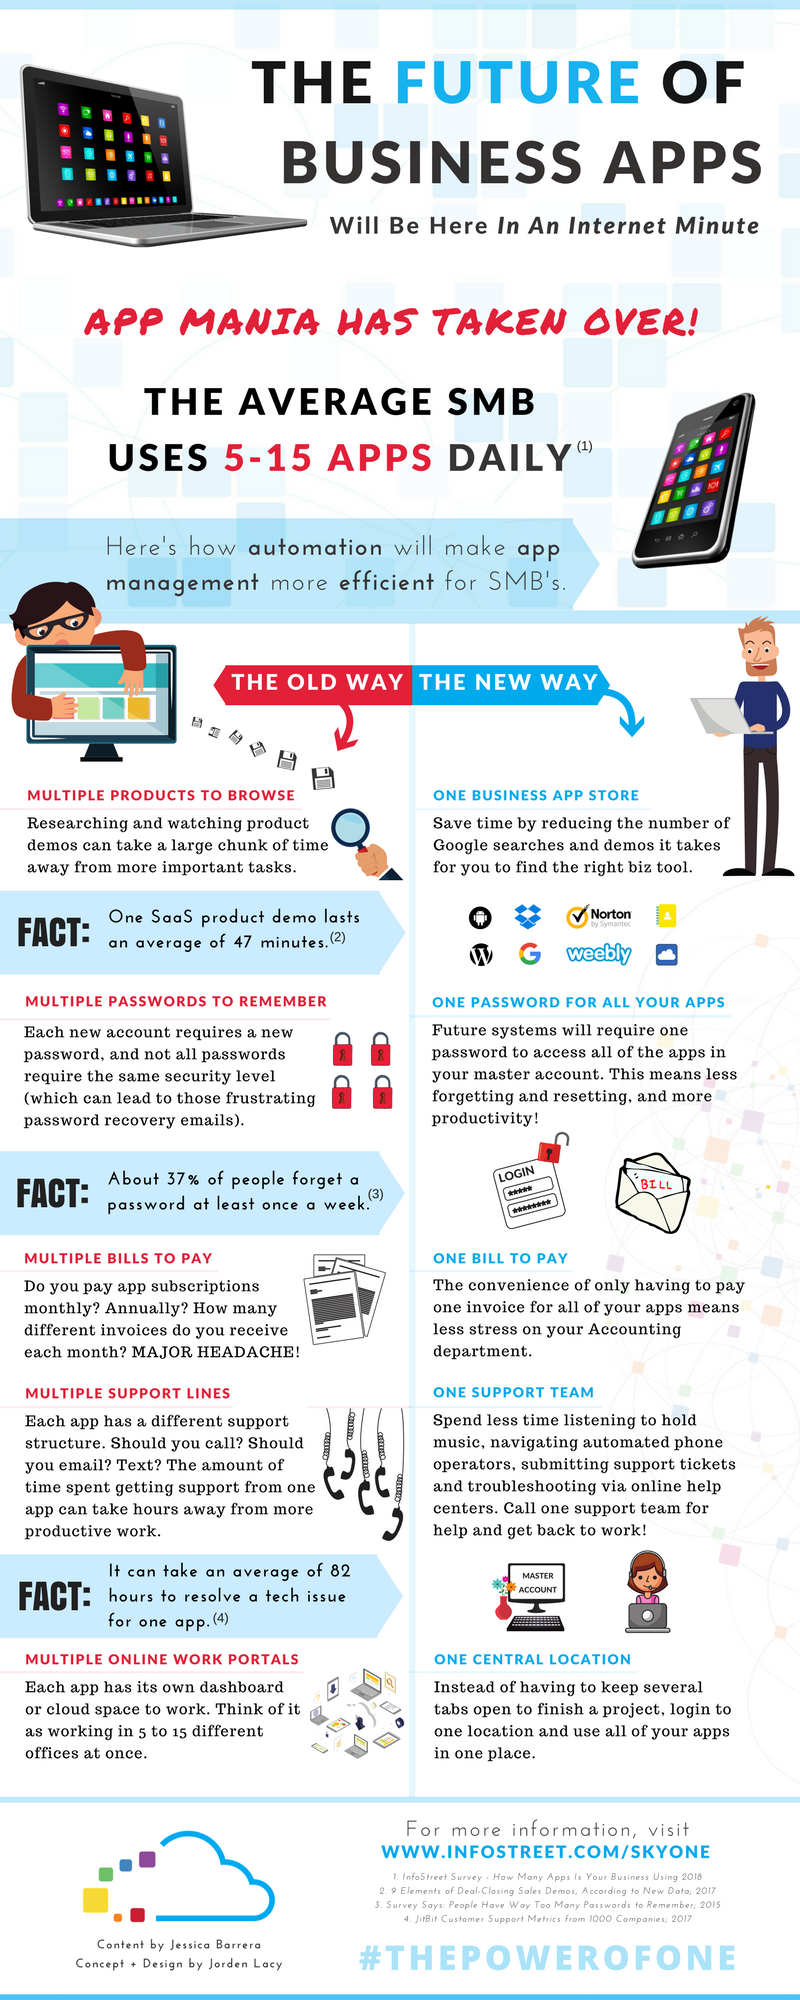 The Future of Business Apps (Infographic)